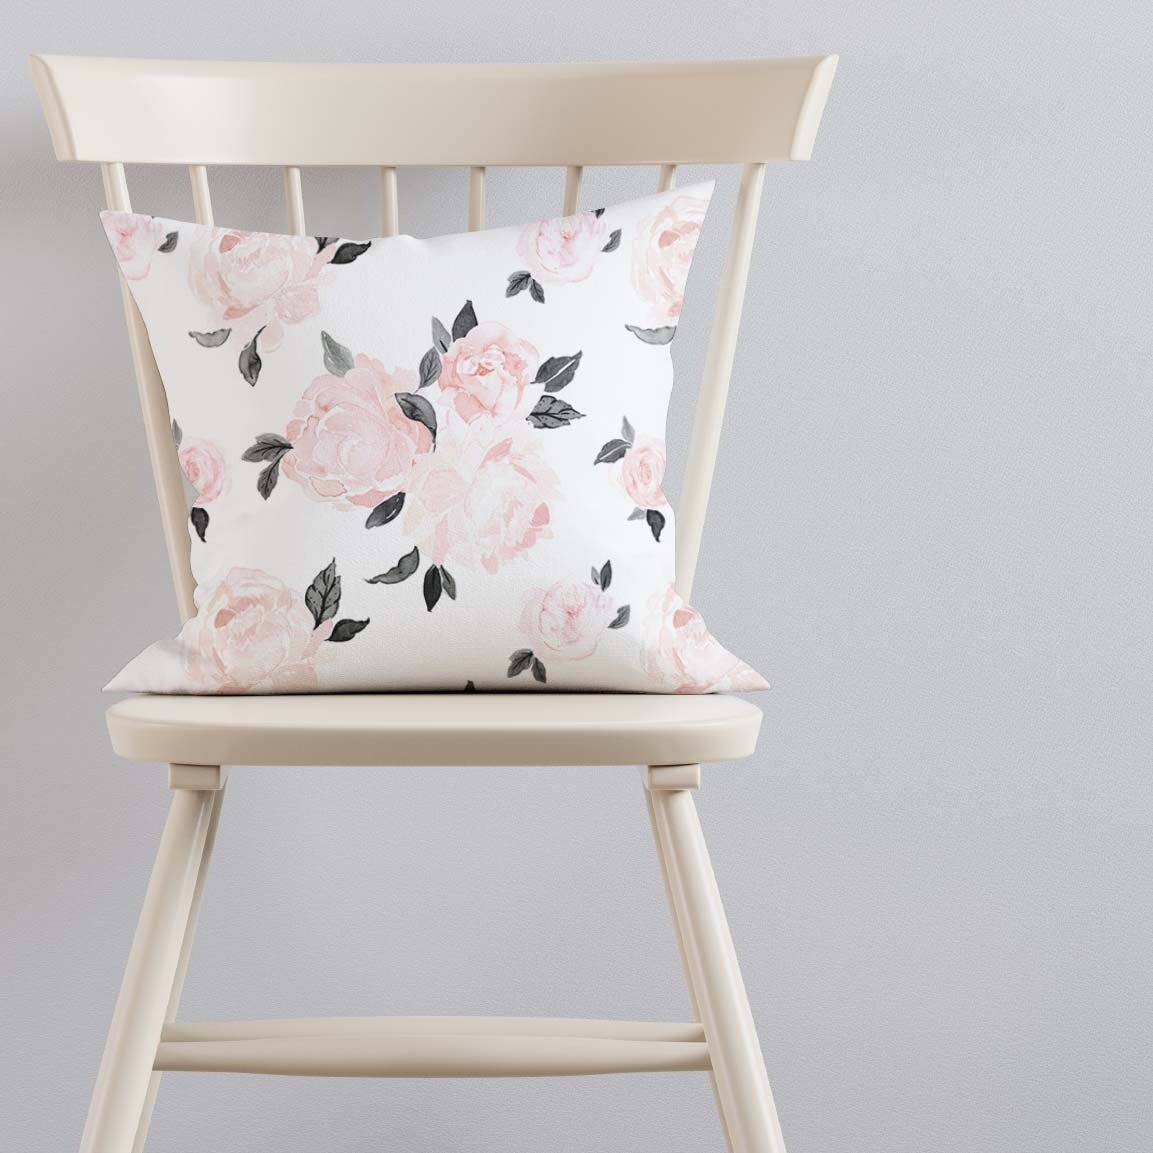 Pillow on Ivory Chair Large Blush Floral